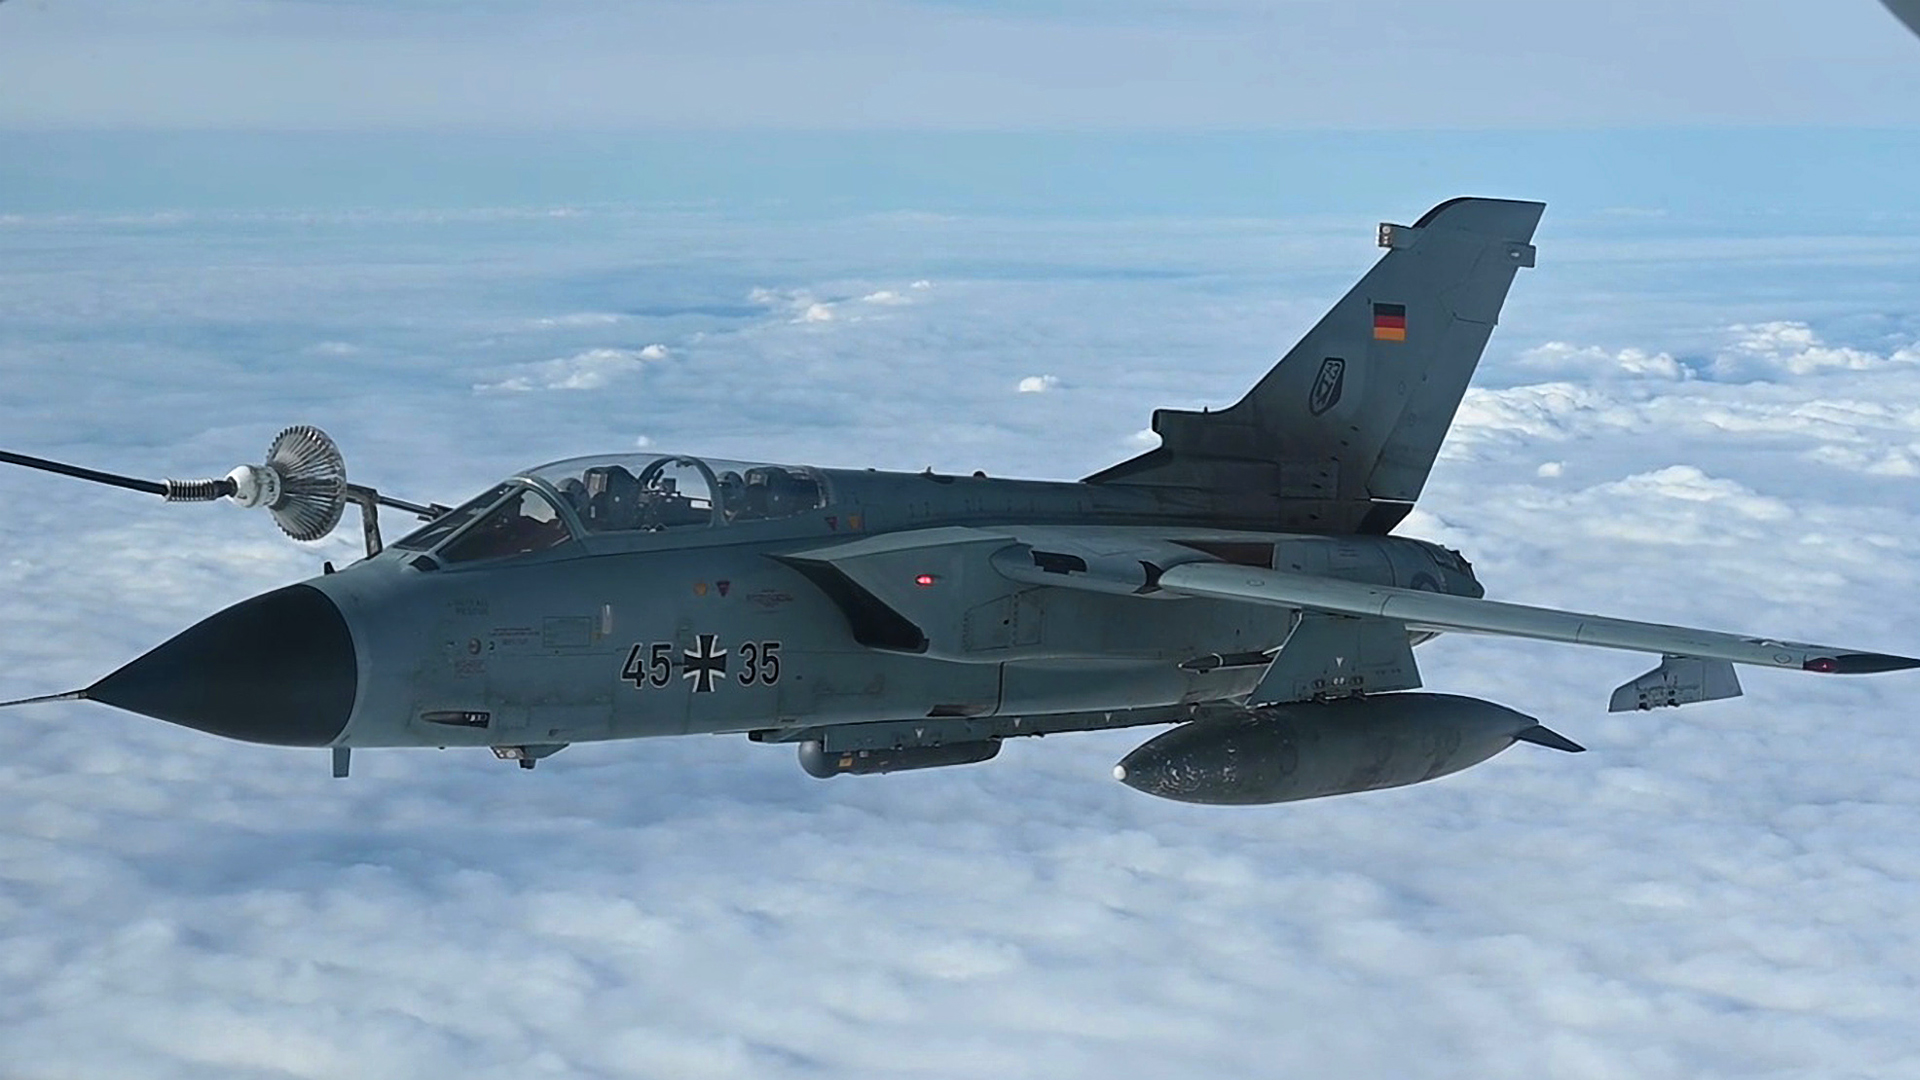 VIDEO: US Air Force Stratotanker Refuels German Fighter Jets Mid-Air During Baltic Trident Exercise